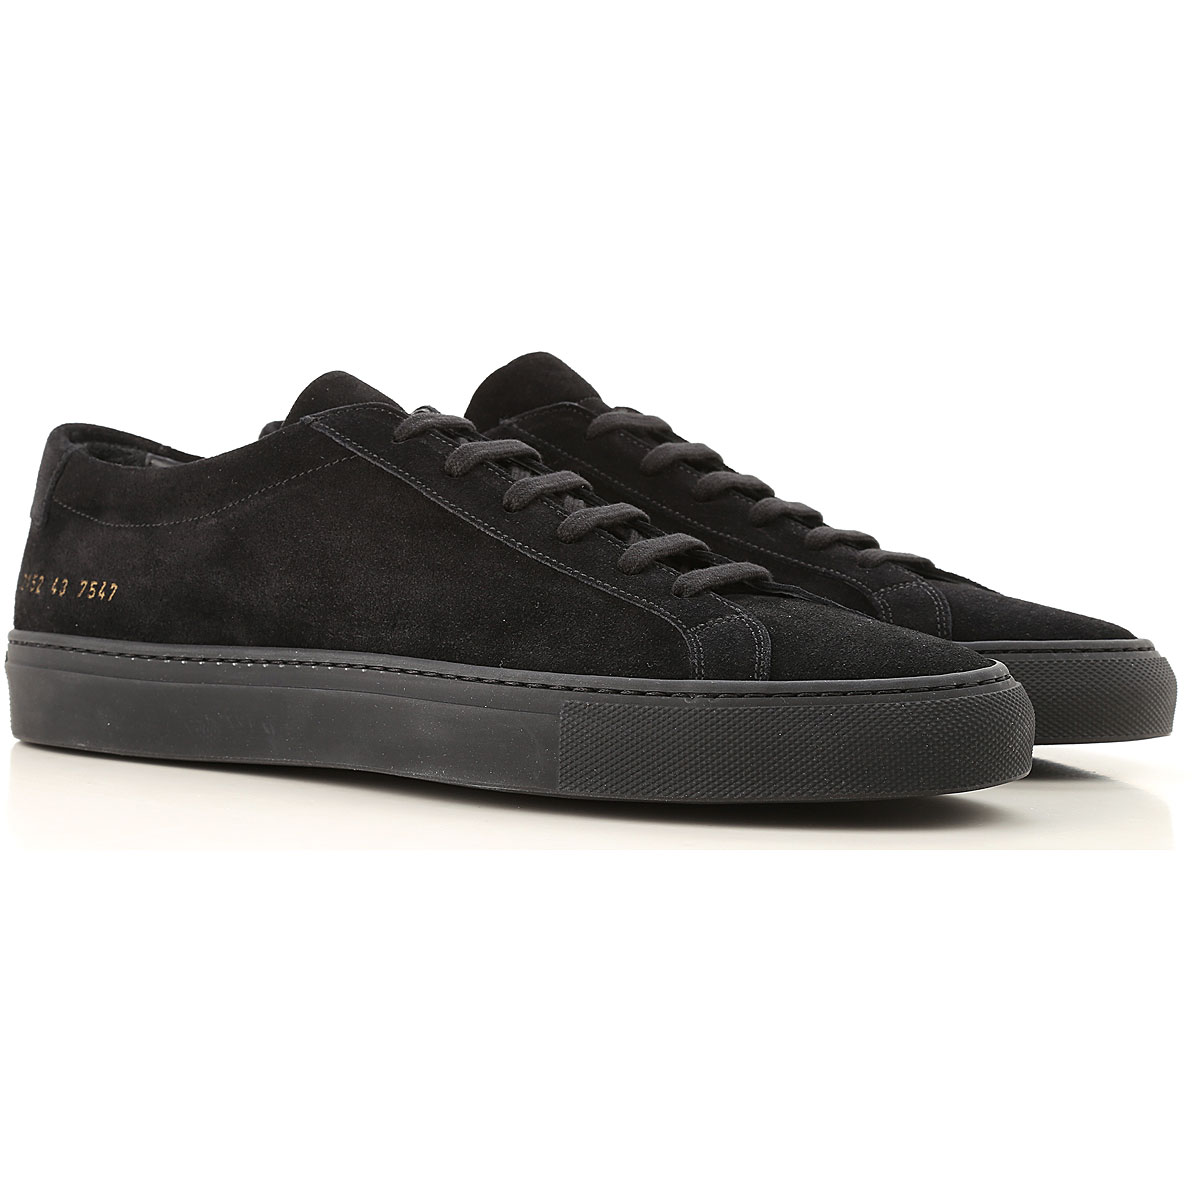 Image of Common Projects Sneakers for Men, Black, suede, 2017, 6.5 7.5 8